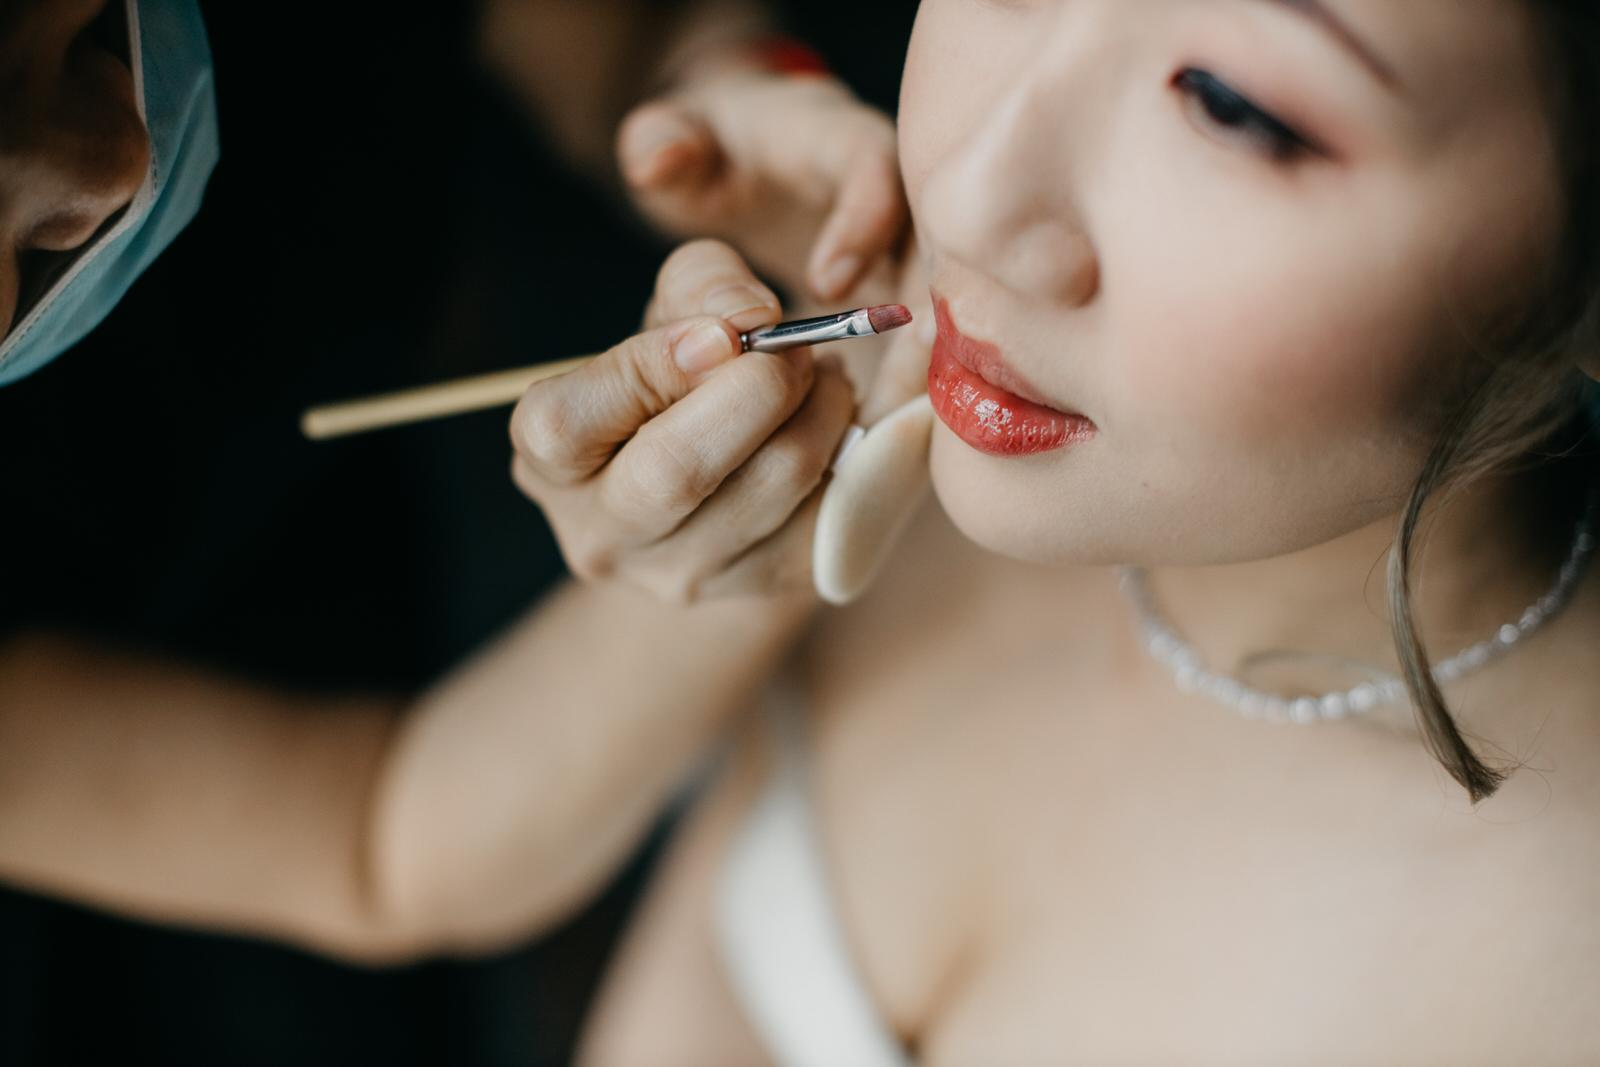 A Rooftop Poolside Wedding at Hotel Stripes Kuala Lumpur MCO2.0 Cliff Choong Photography Malaysia Covid19 ROM Bride Make Up Getting Ready